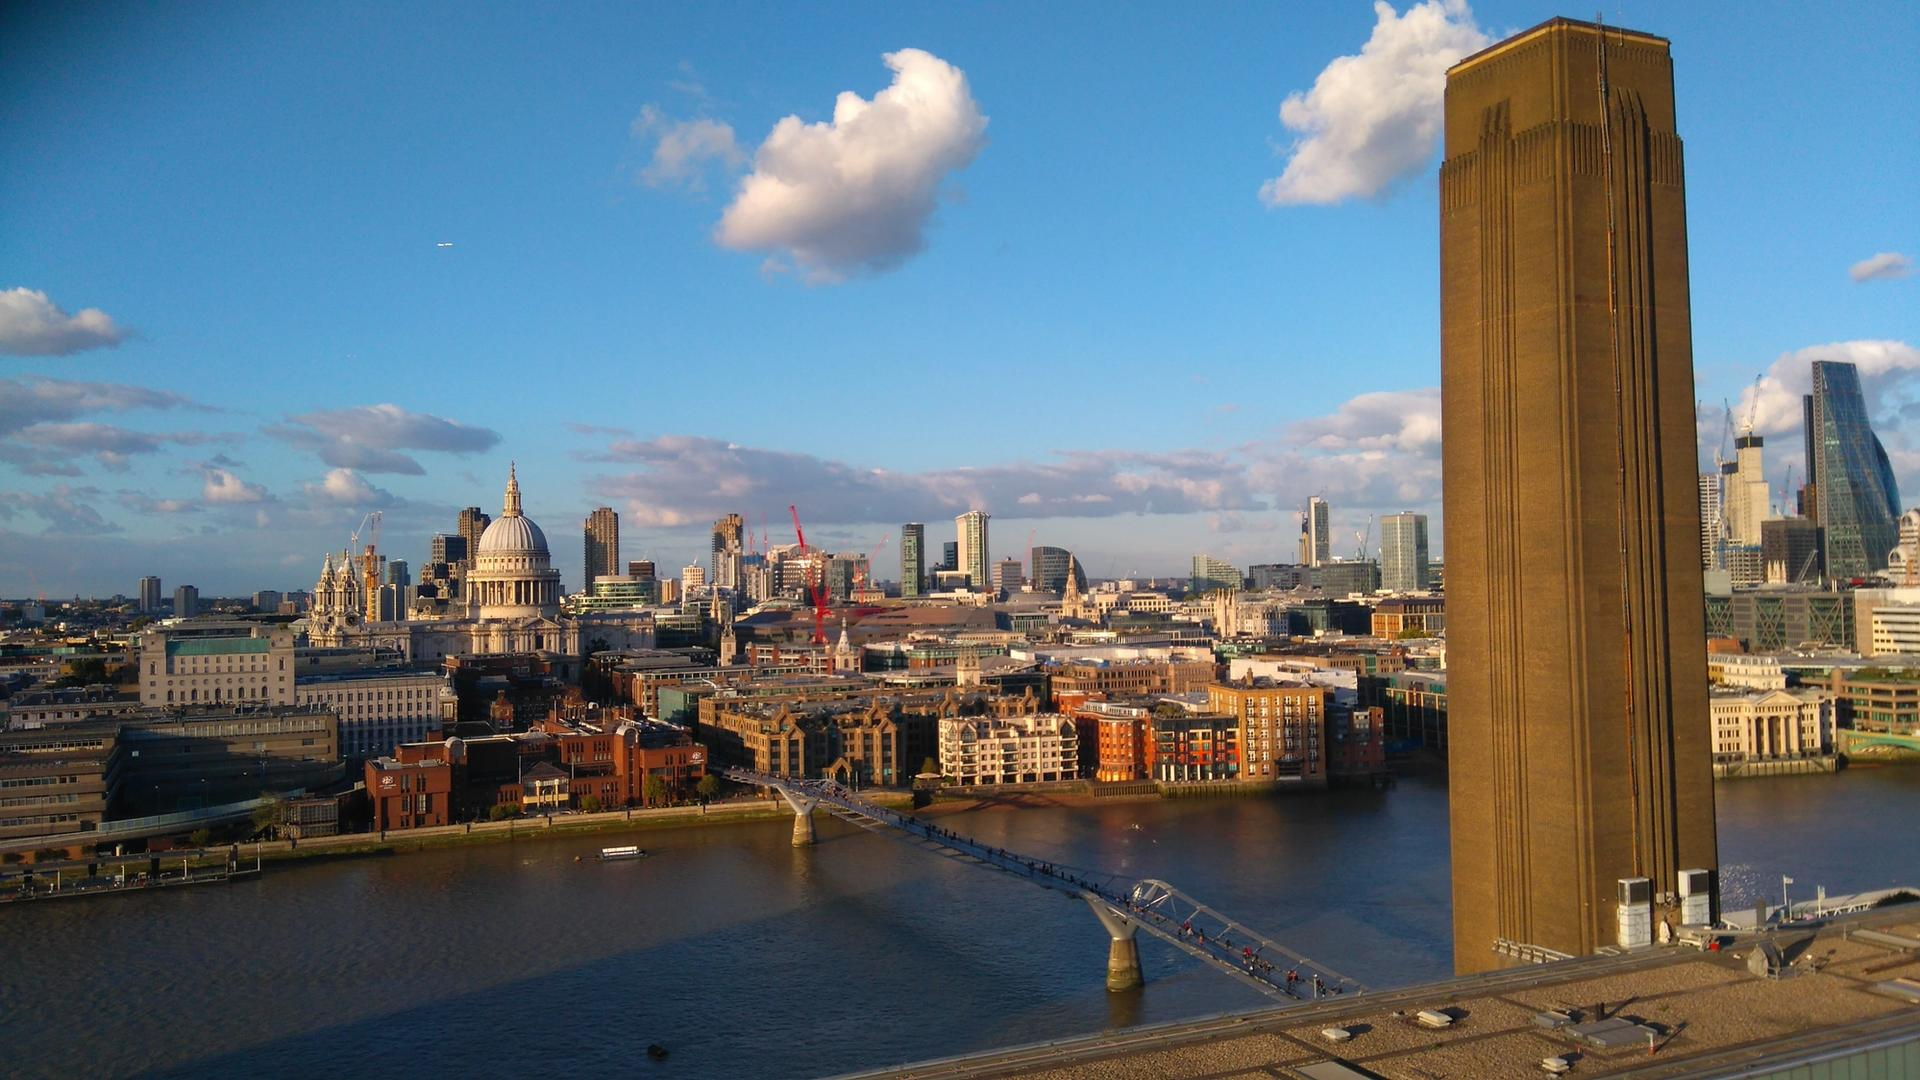 View over the City of London from the viewing platform of Tate Modern's Blavatnik building, from which a six-year-old boy was thrown on Sunday © Wikimedia Commons